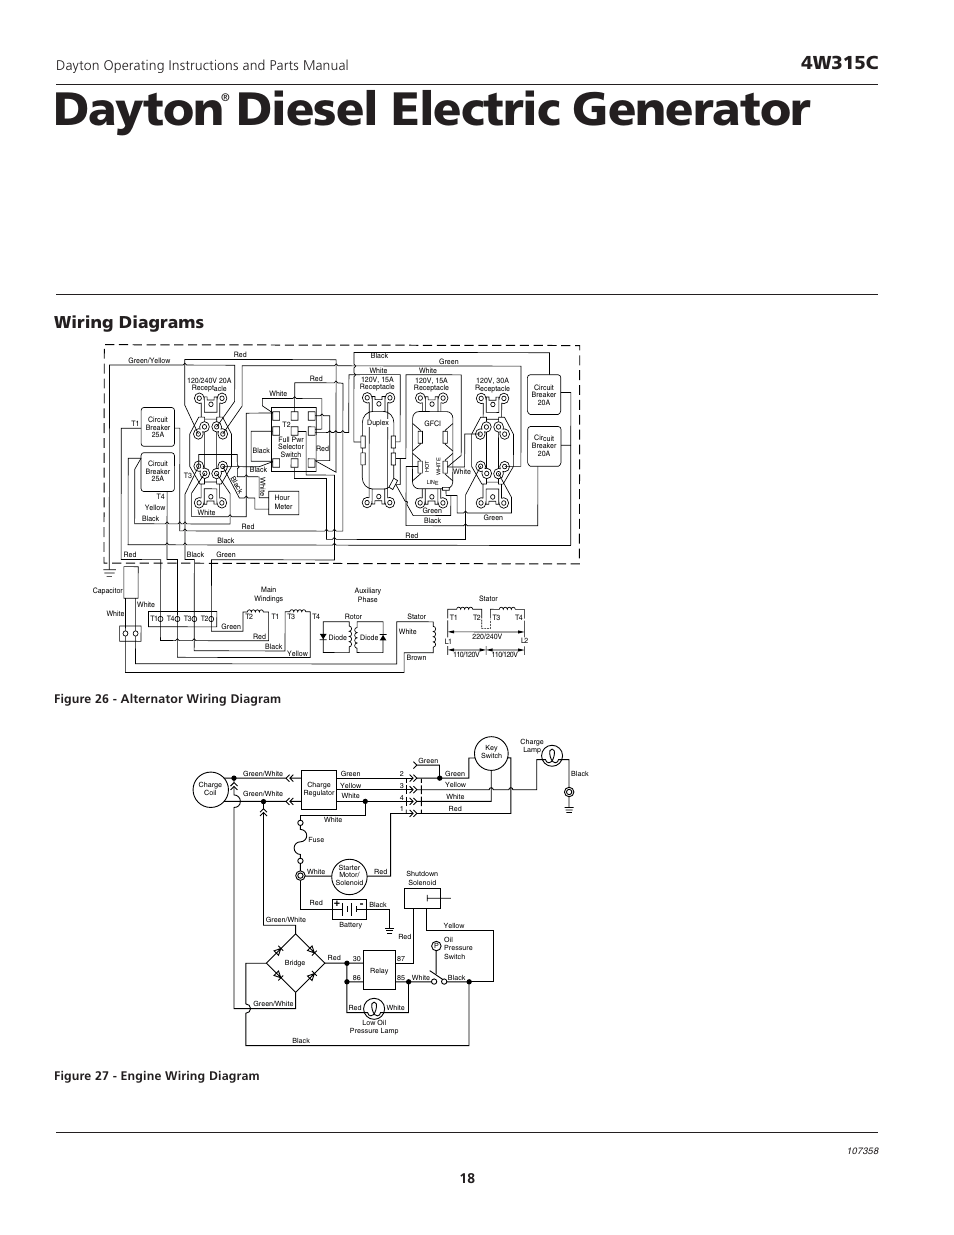 medium resolution of dayton diesel electric generator 4w315c wiring diagrams dayton operating instructions and parts manual